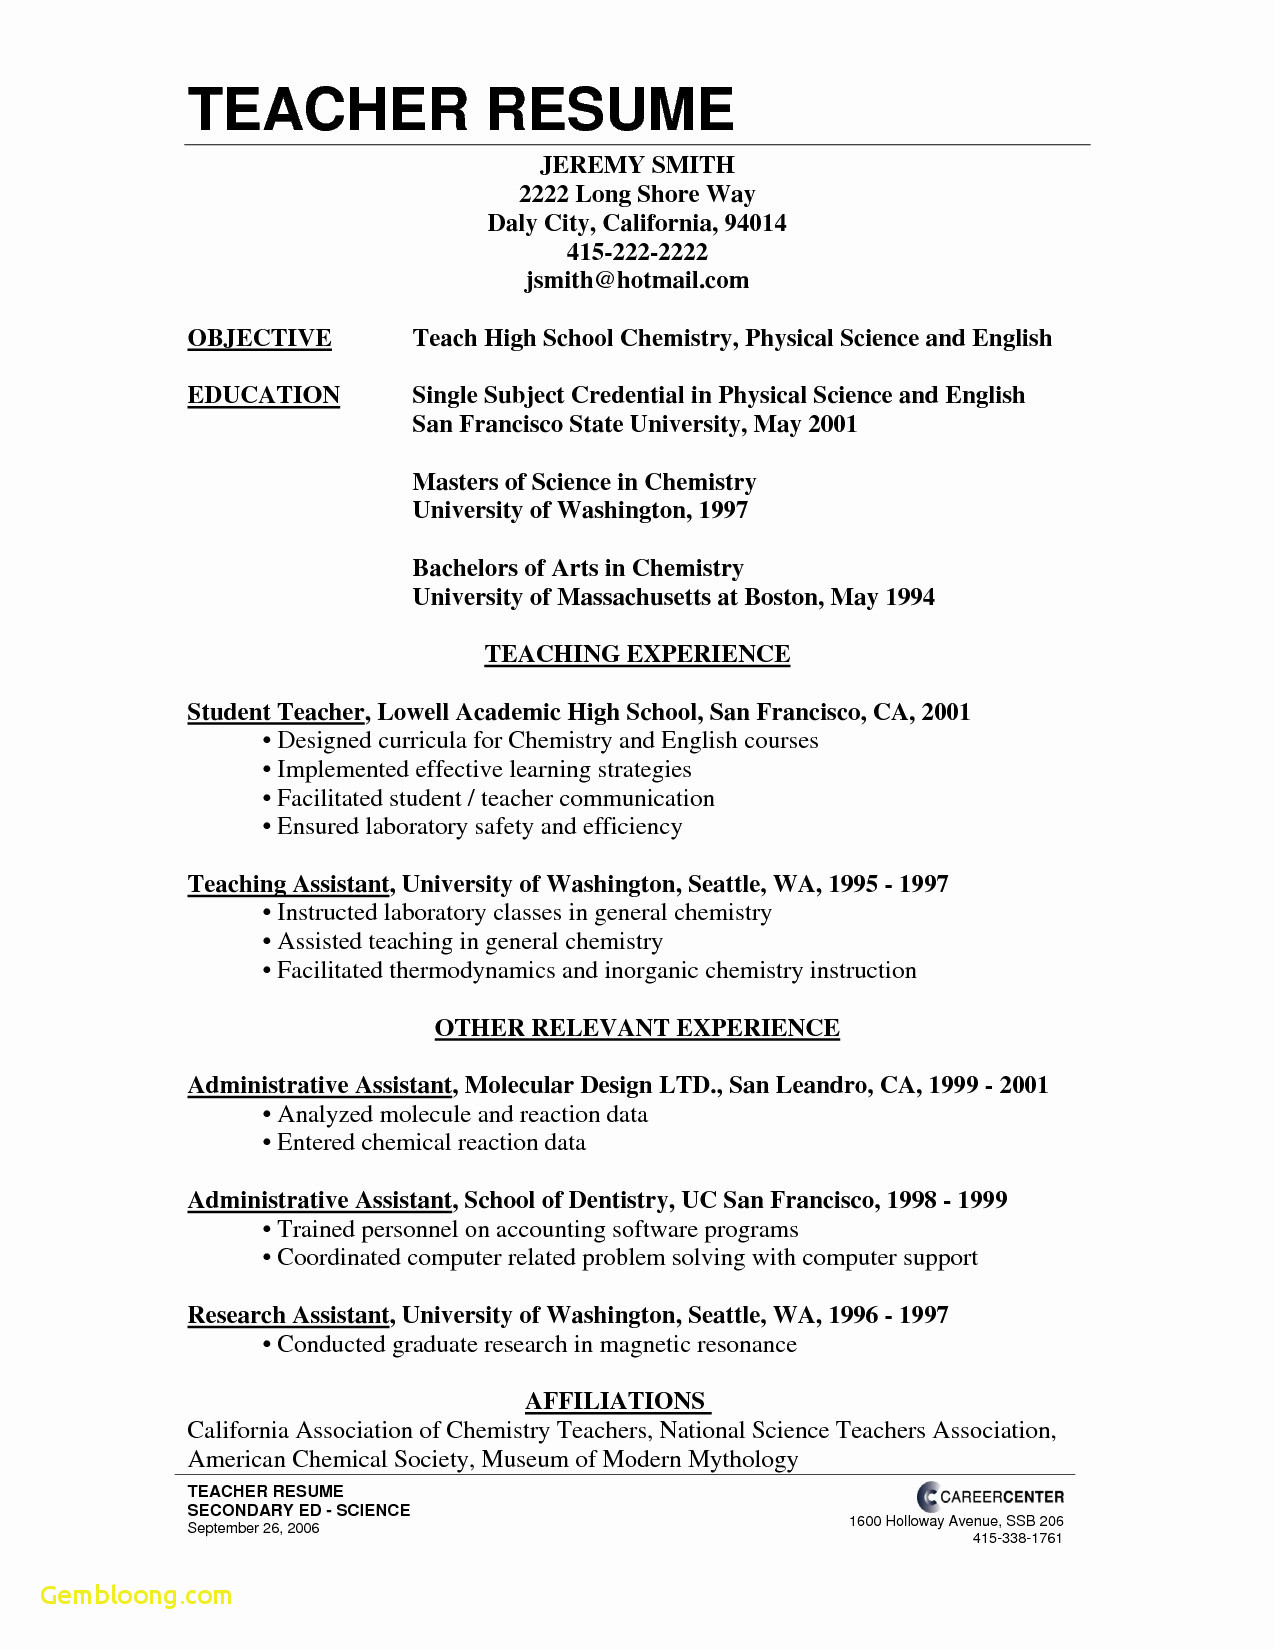 Cover Letter Template Doc Download - 25 Resume Examples Word Doc Free Sample Resume